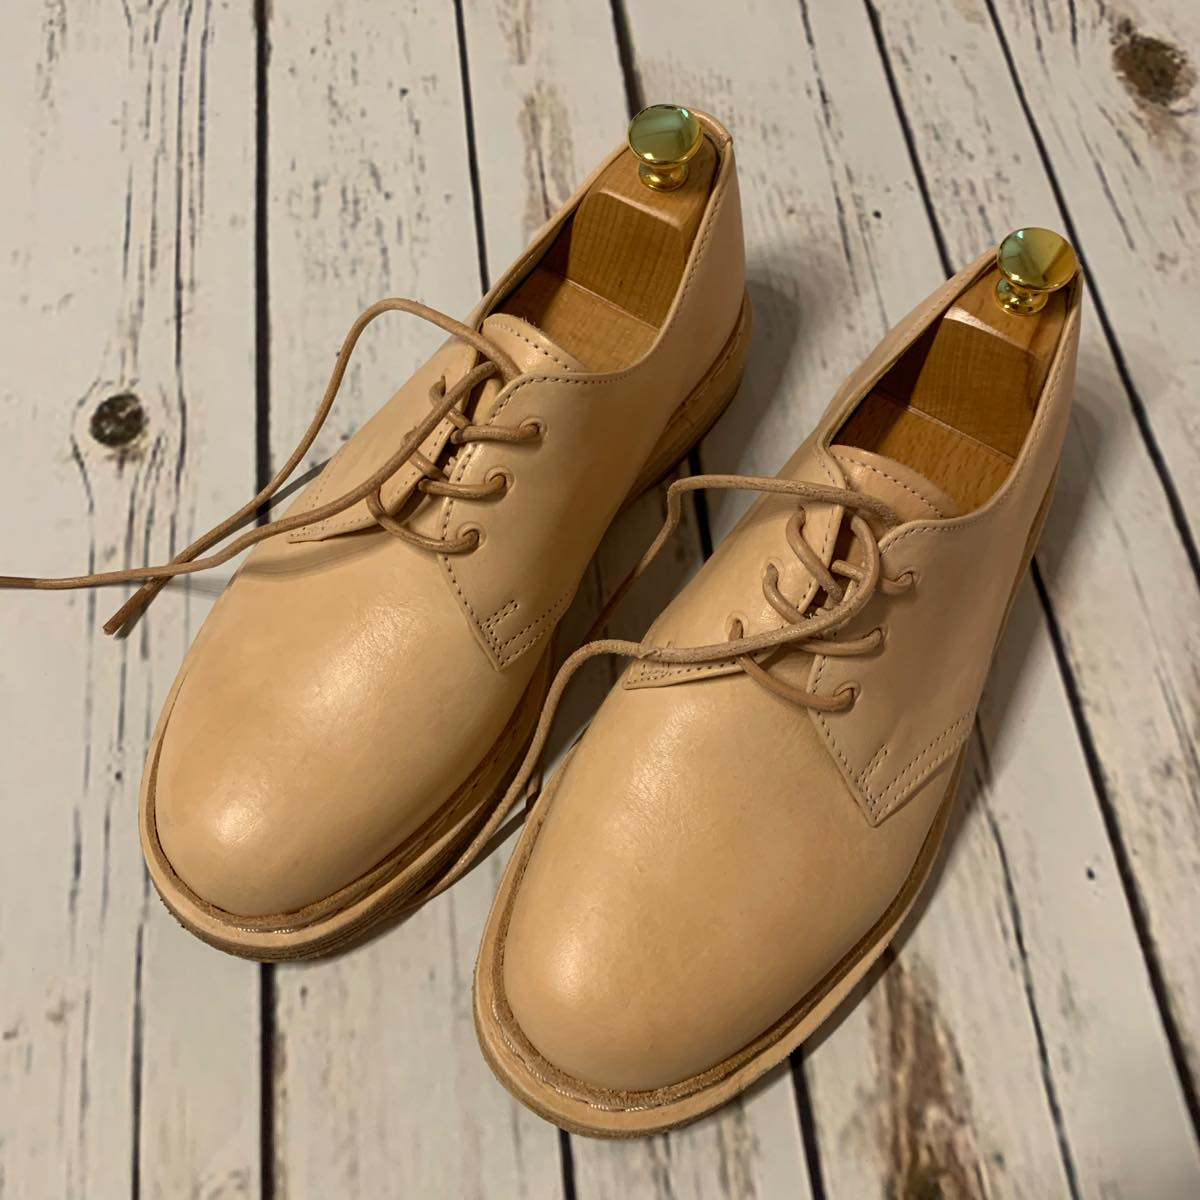 Hendre Scheme 	Dr.Martens -Manual Industrial Products 21 2019AW エンダースキーマー ドクターマーチン